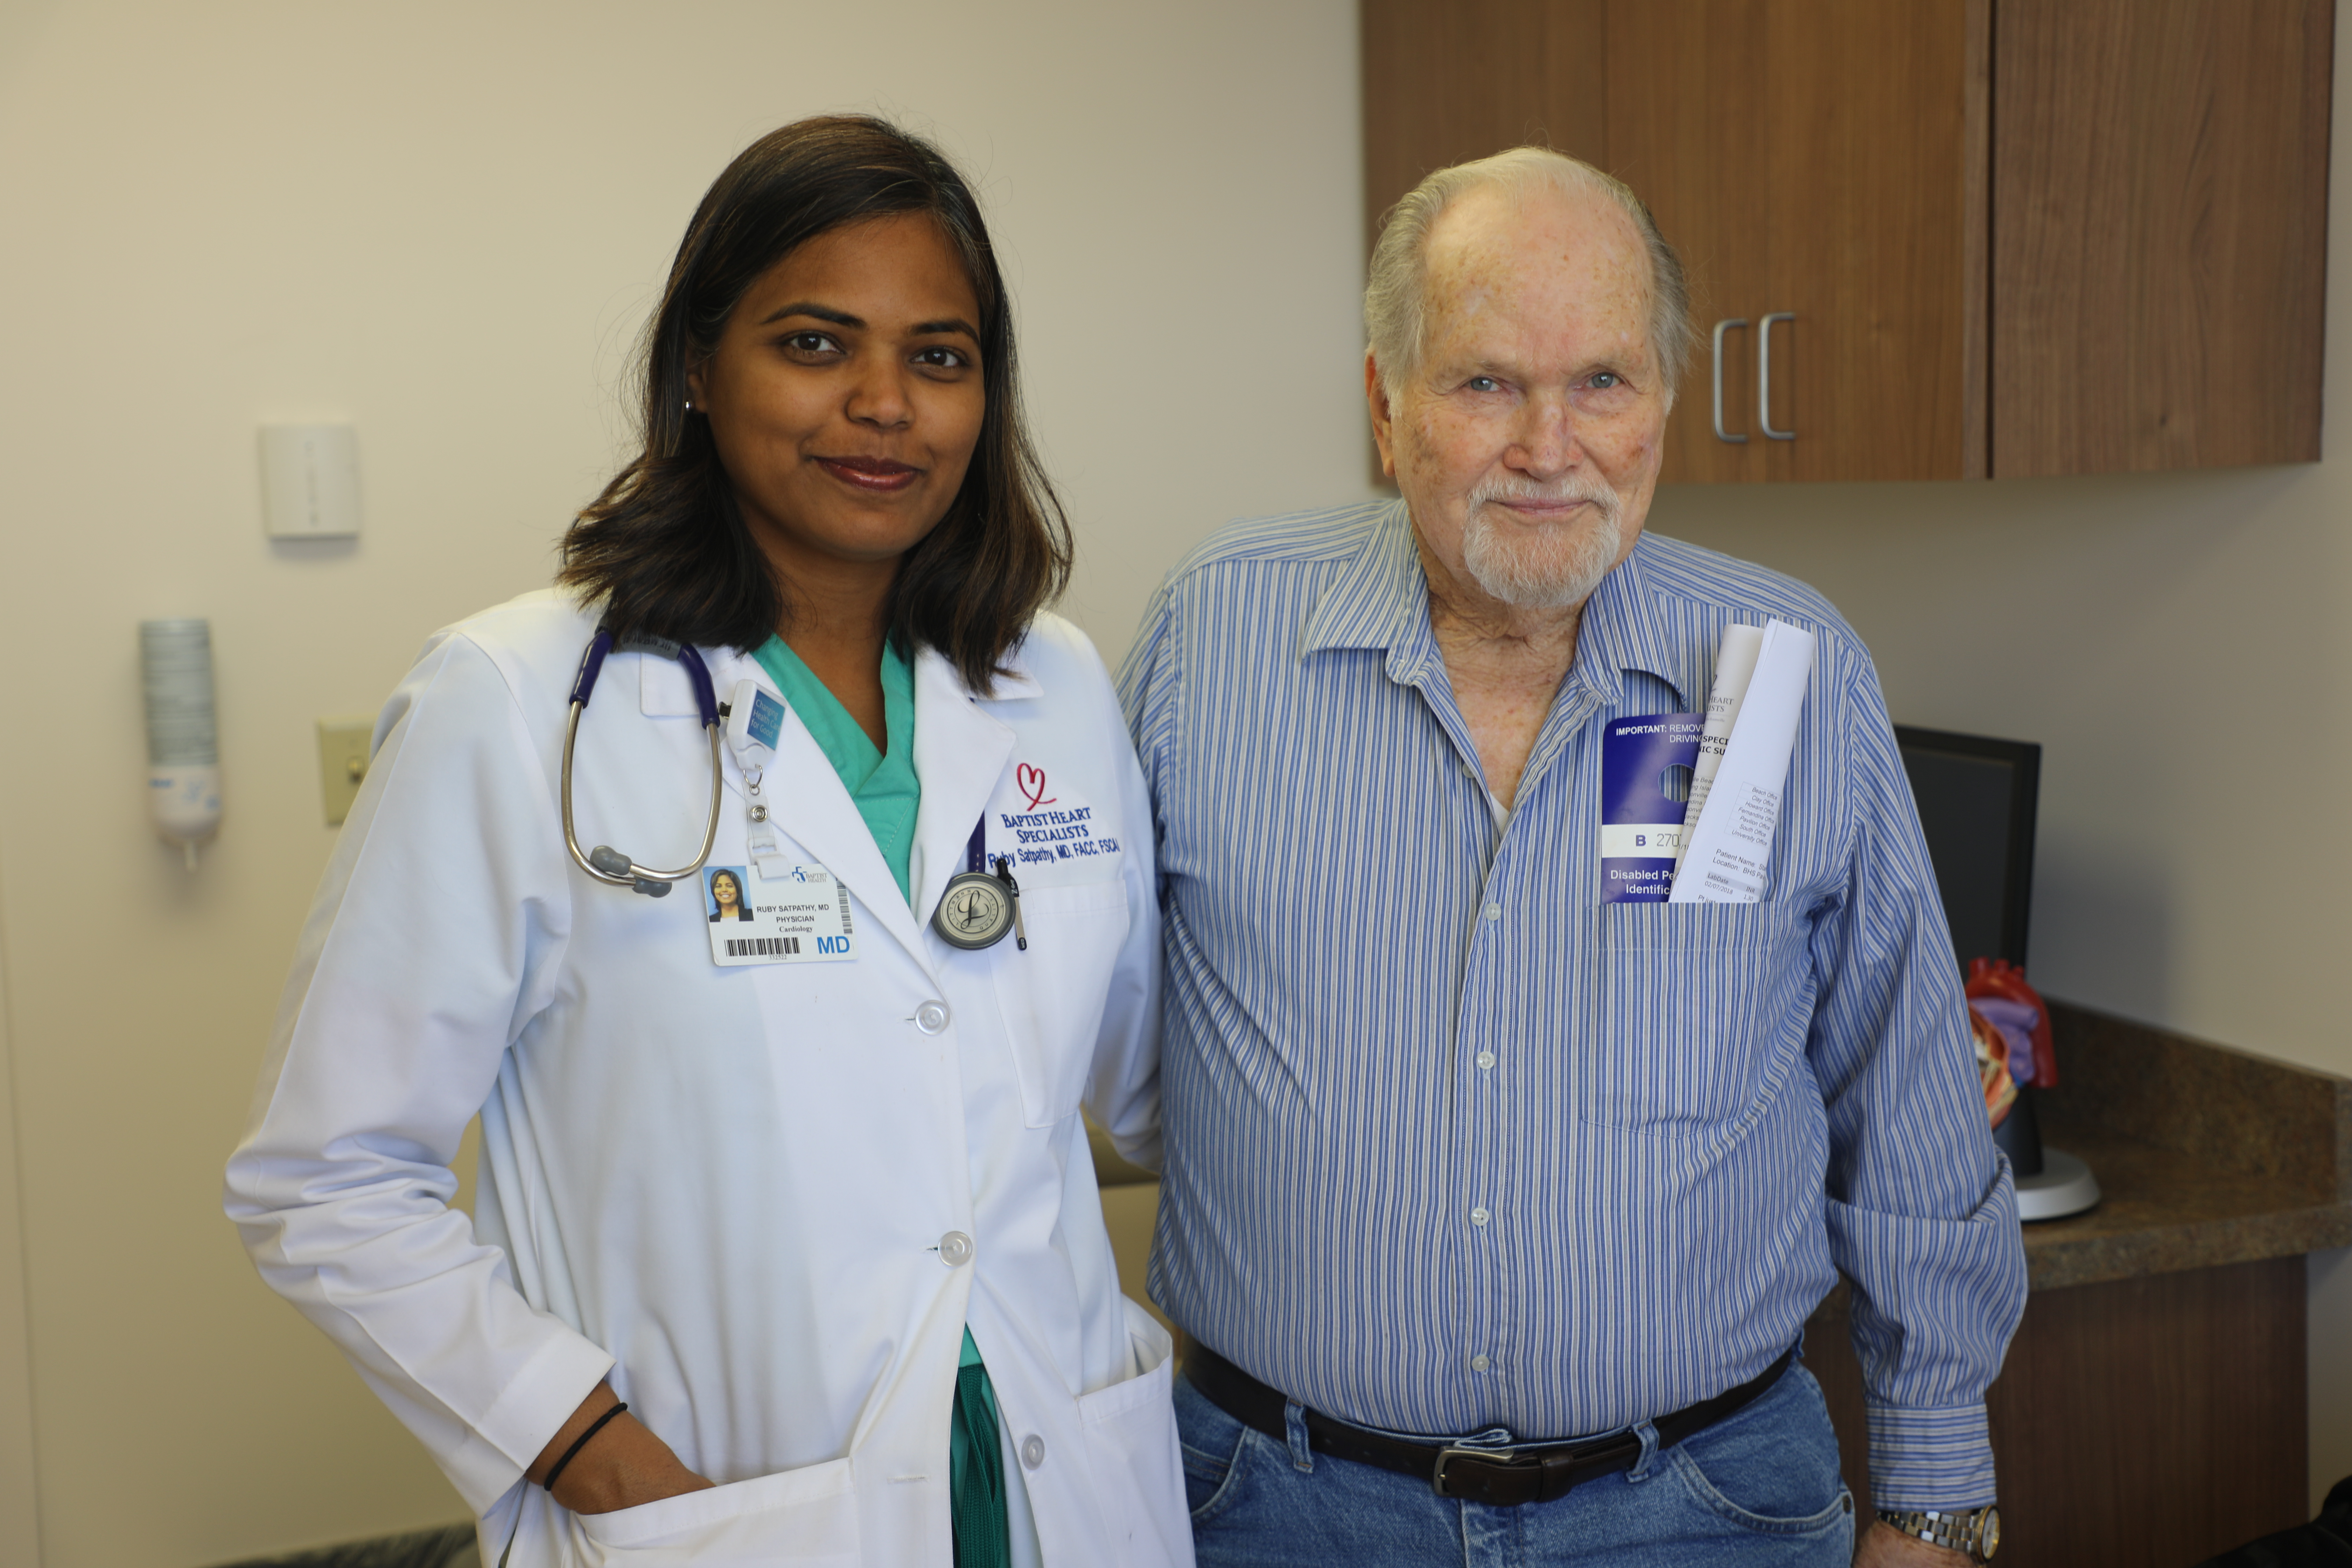 Dr. Satpathy and her patient, Sammie Starling